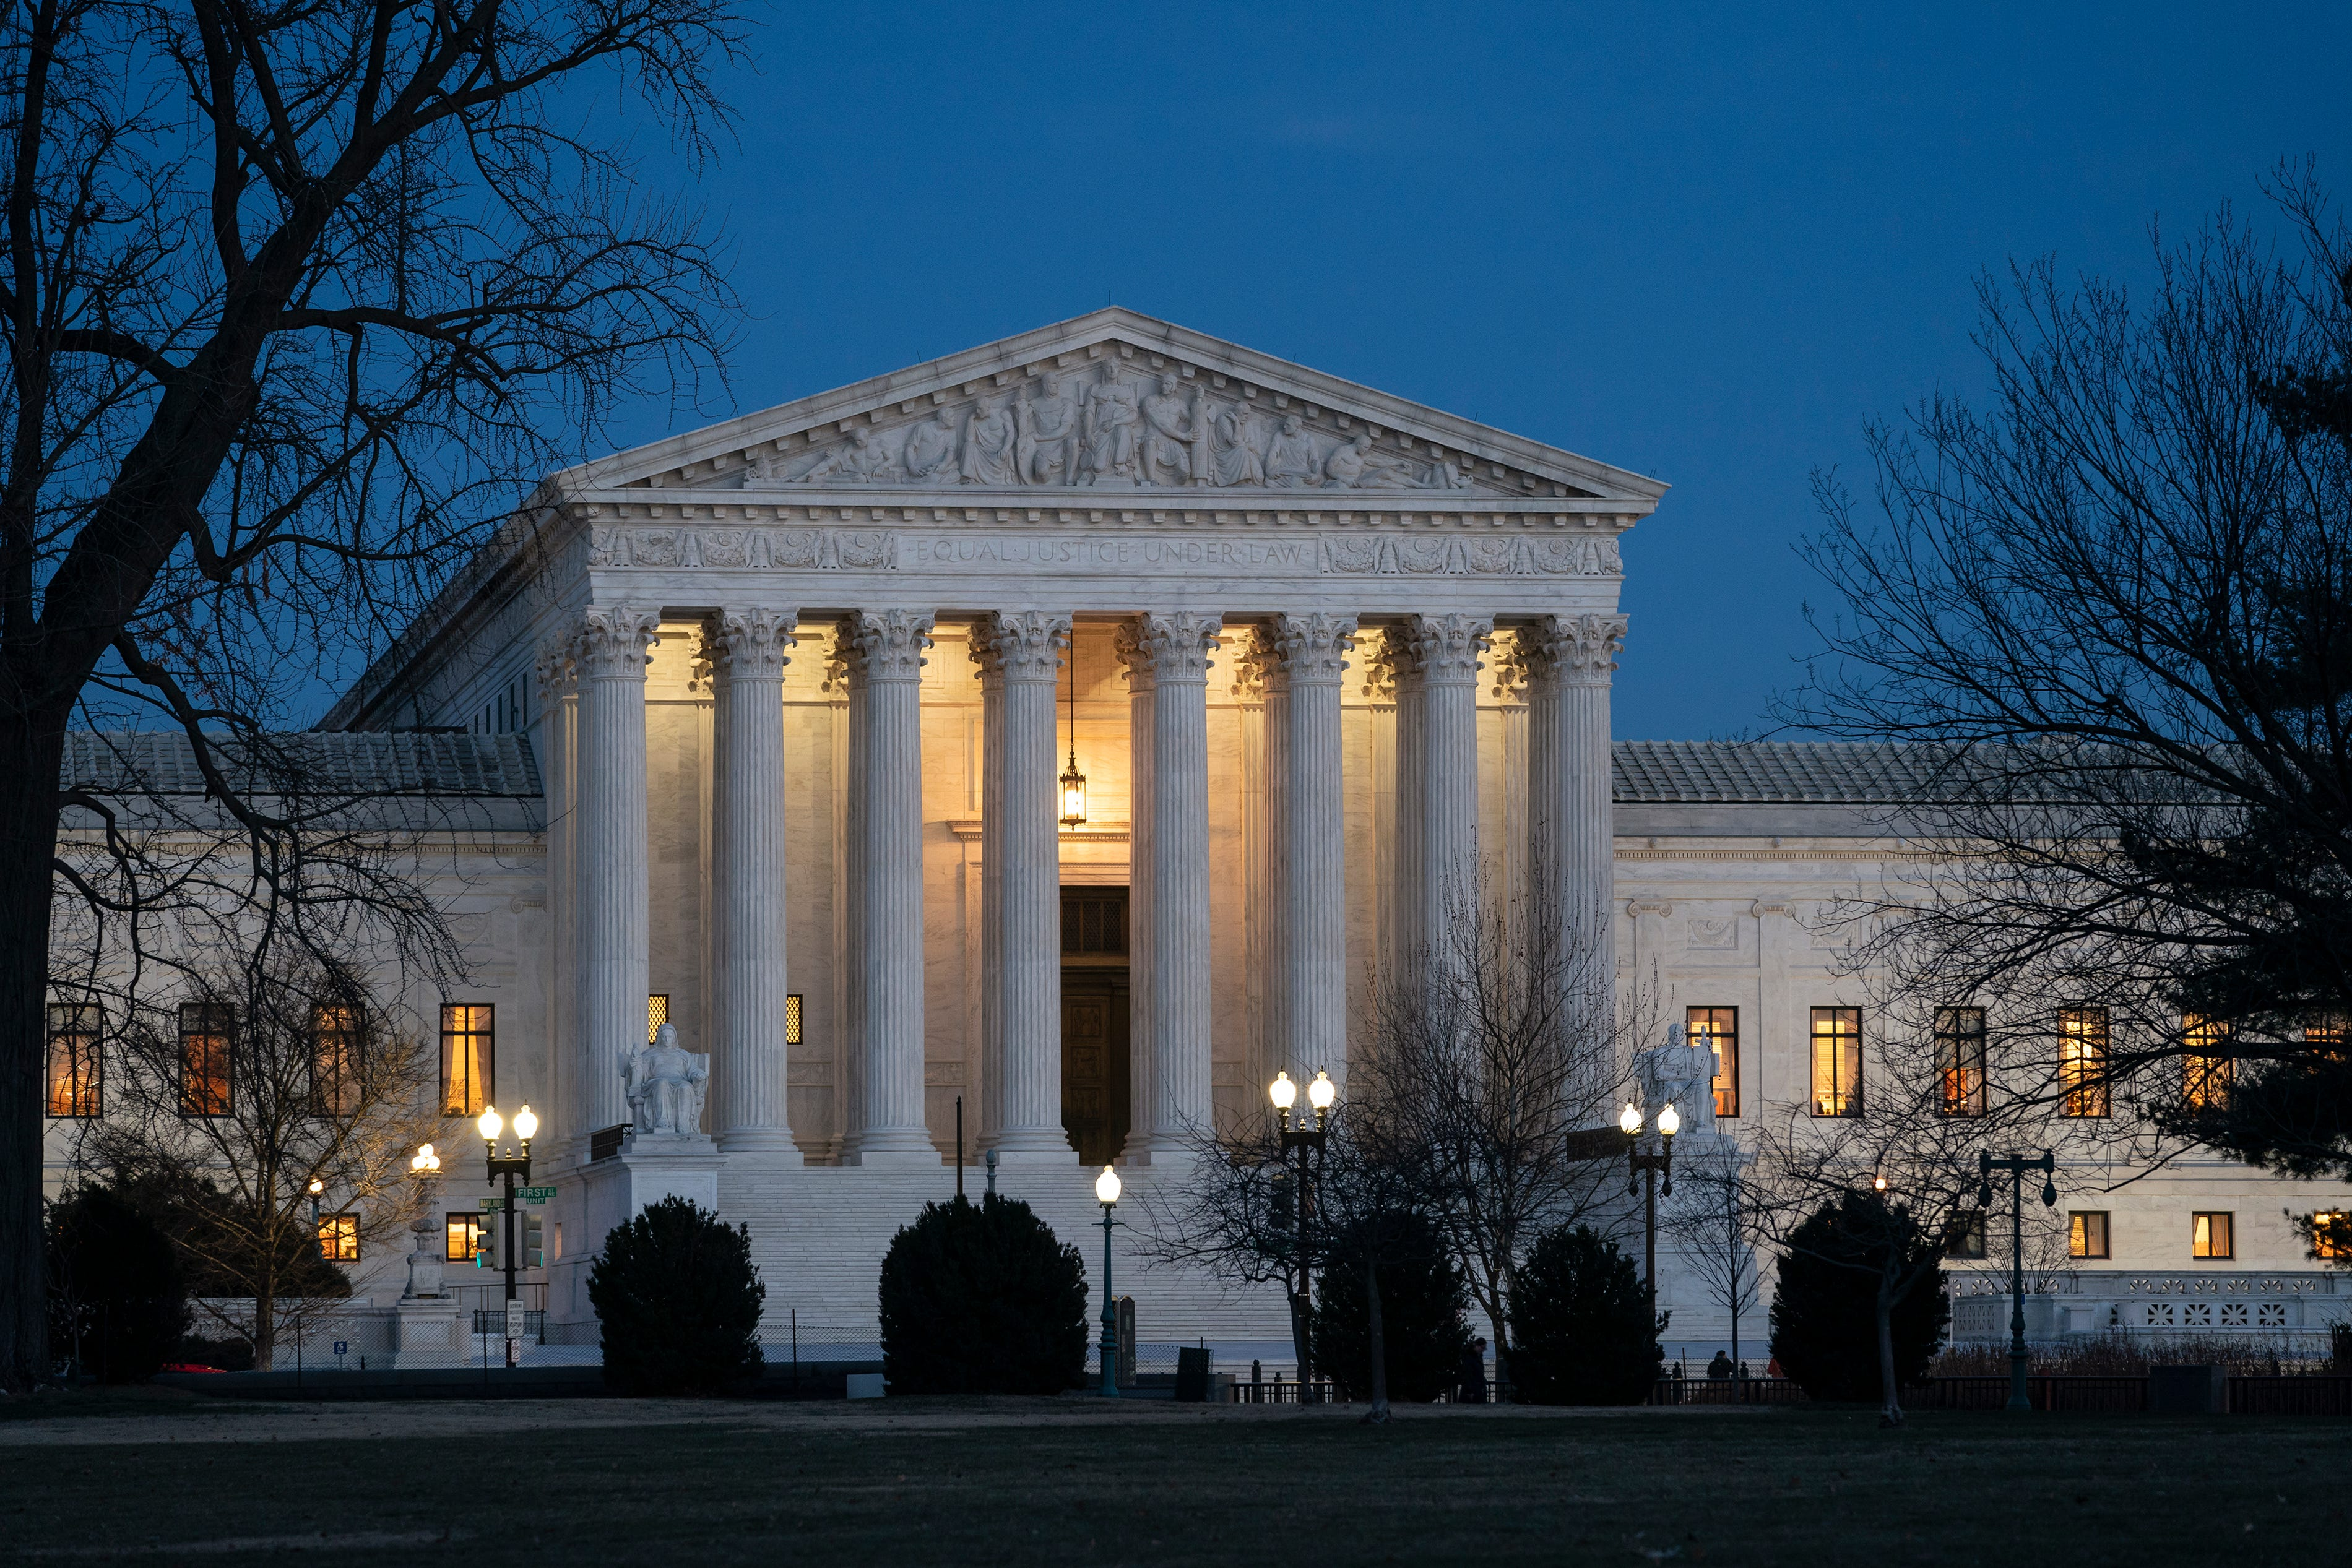 Justices consider hearing a case on 'most offensive word' 2